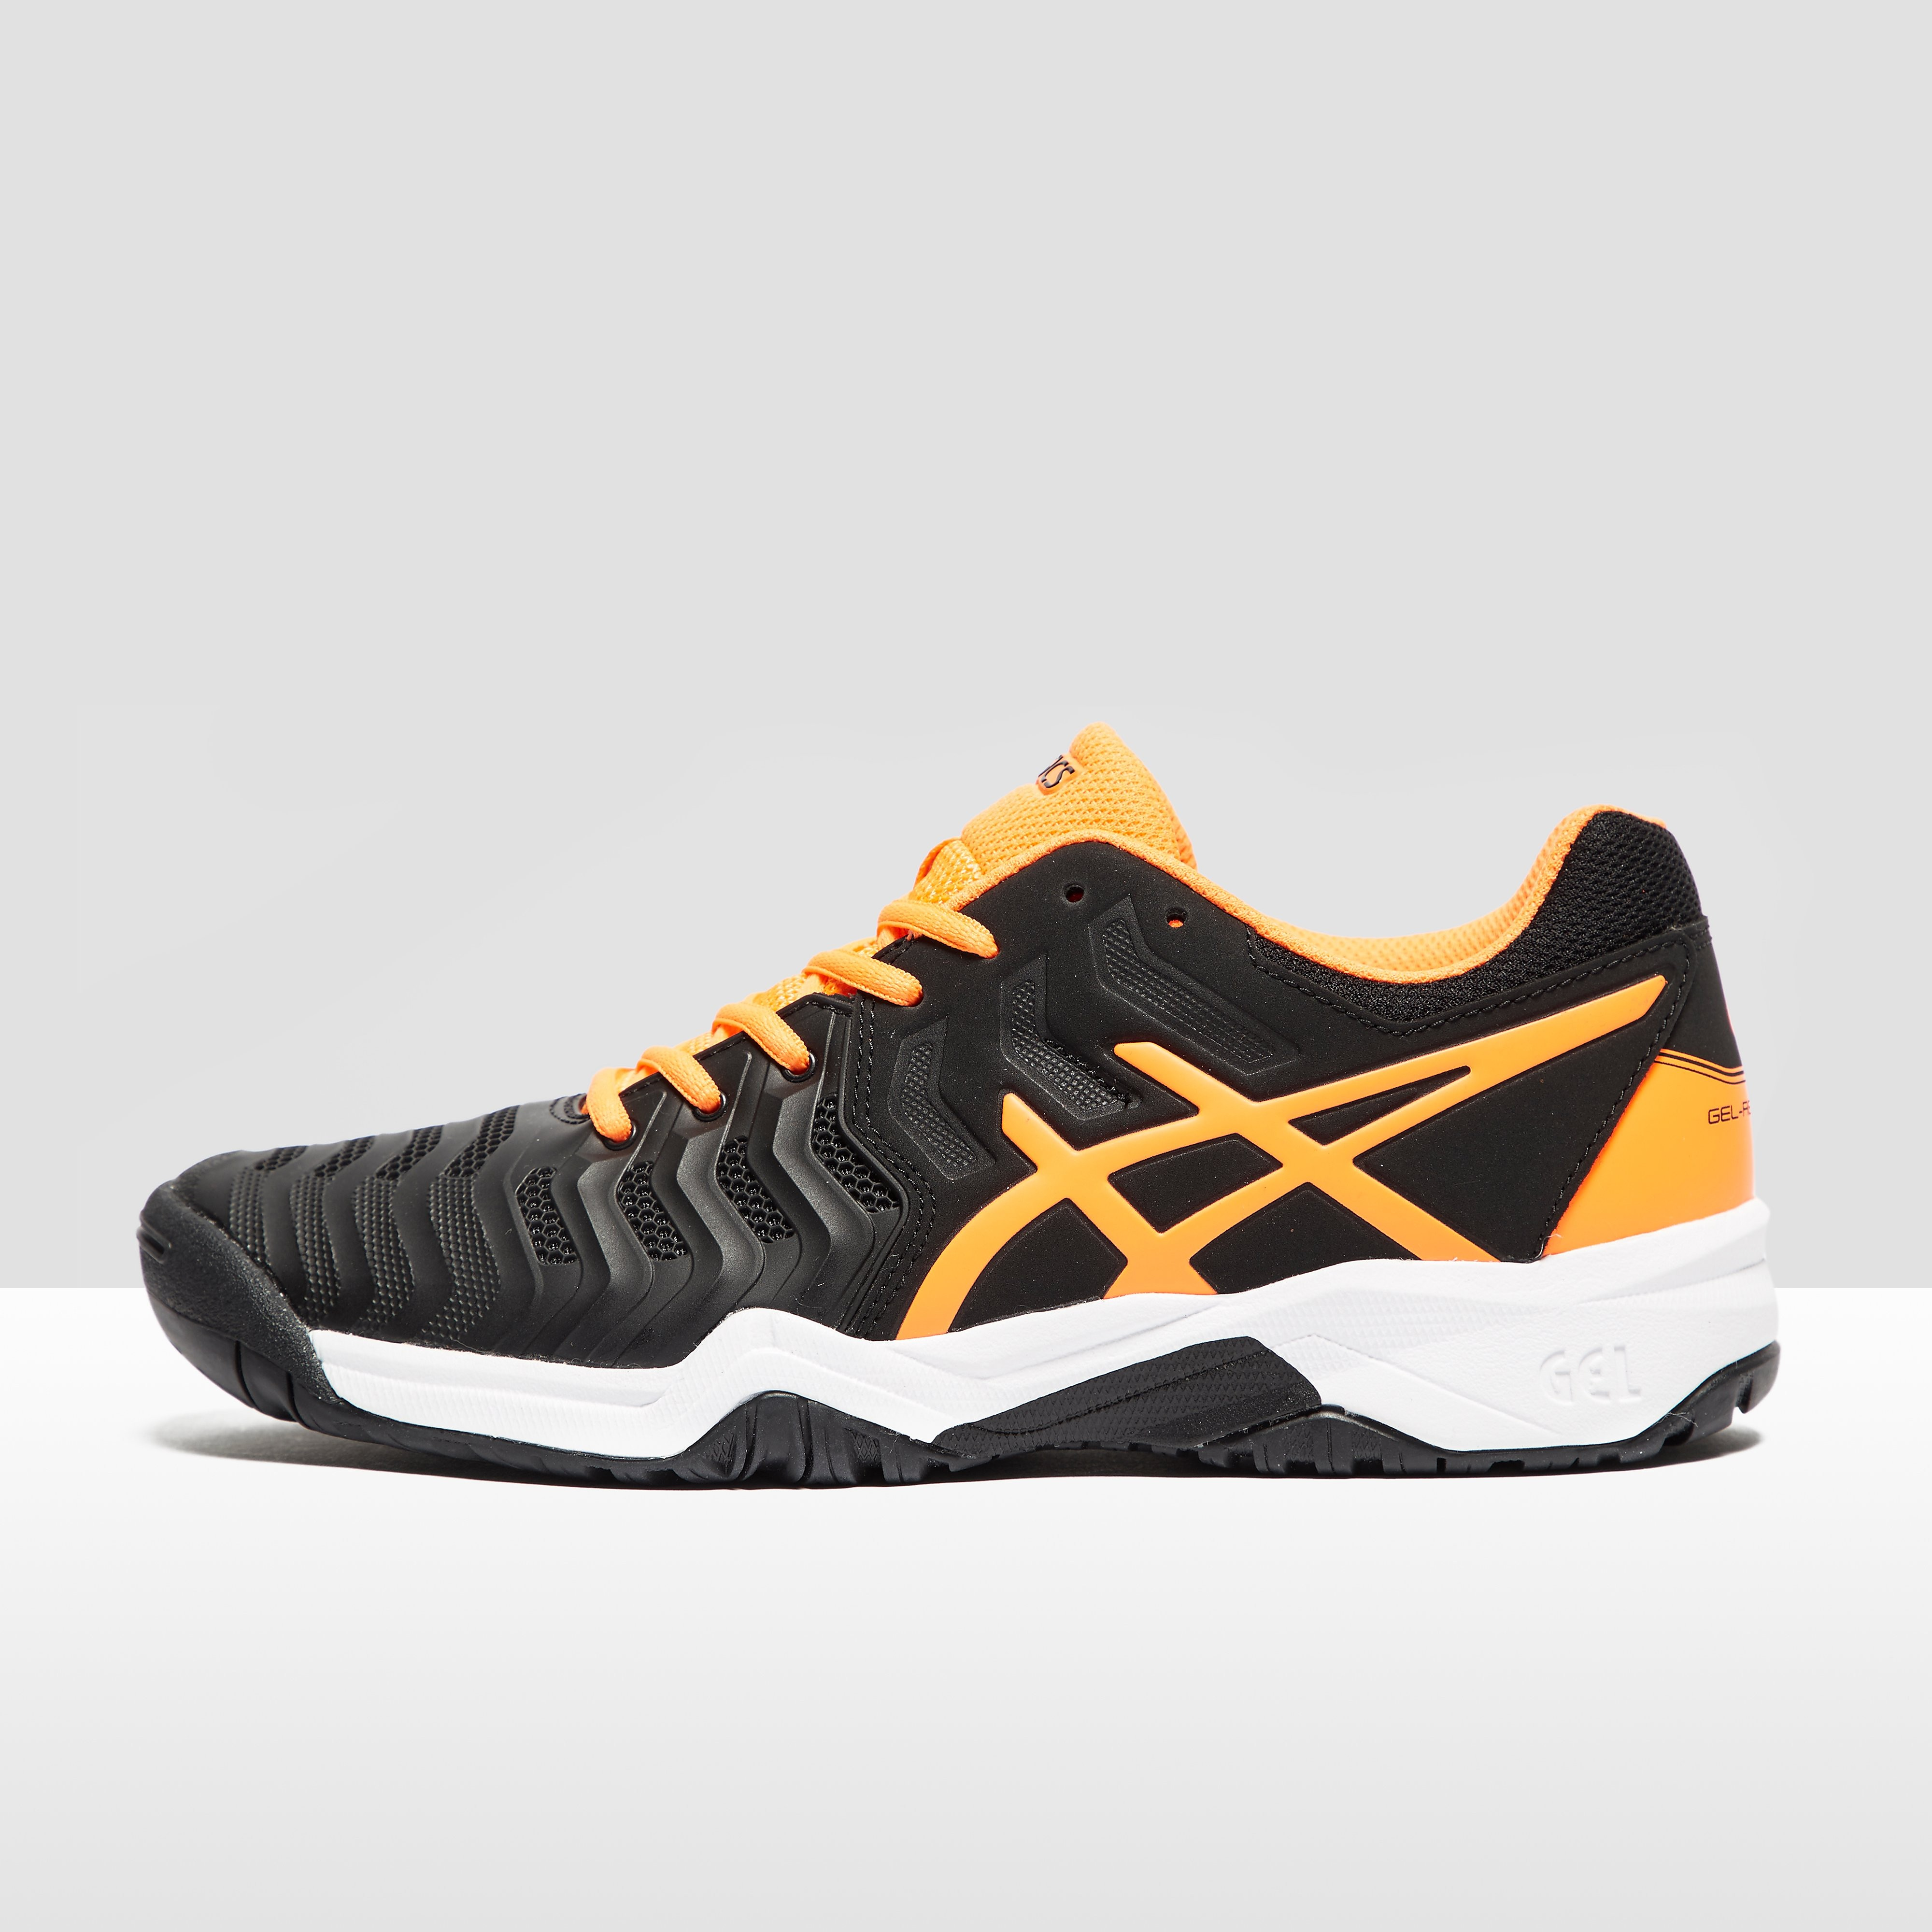 ASICS GEL-RESOLUTION 7 Junior Tennis Shoes